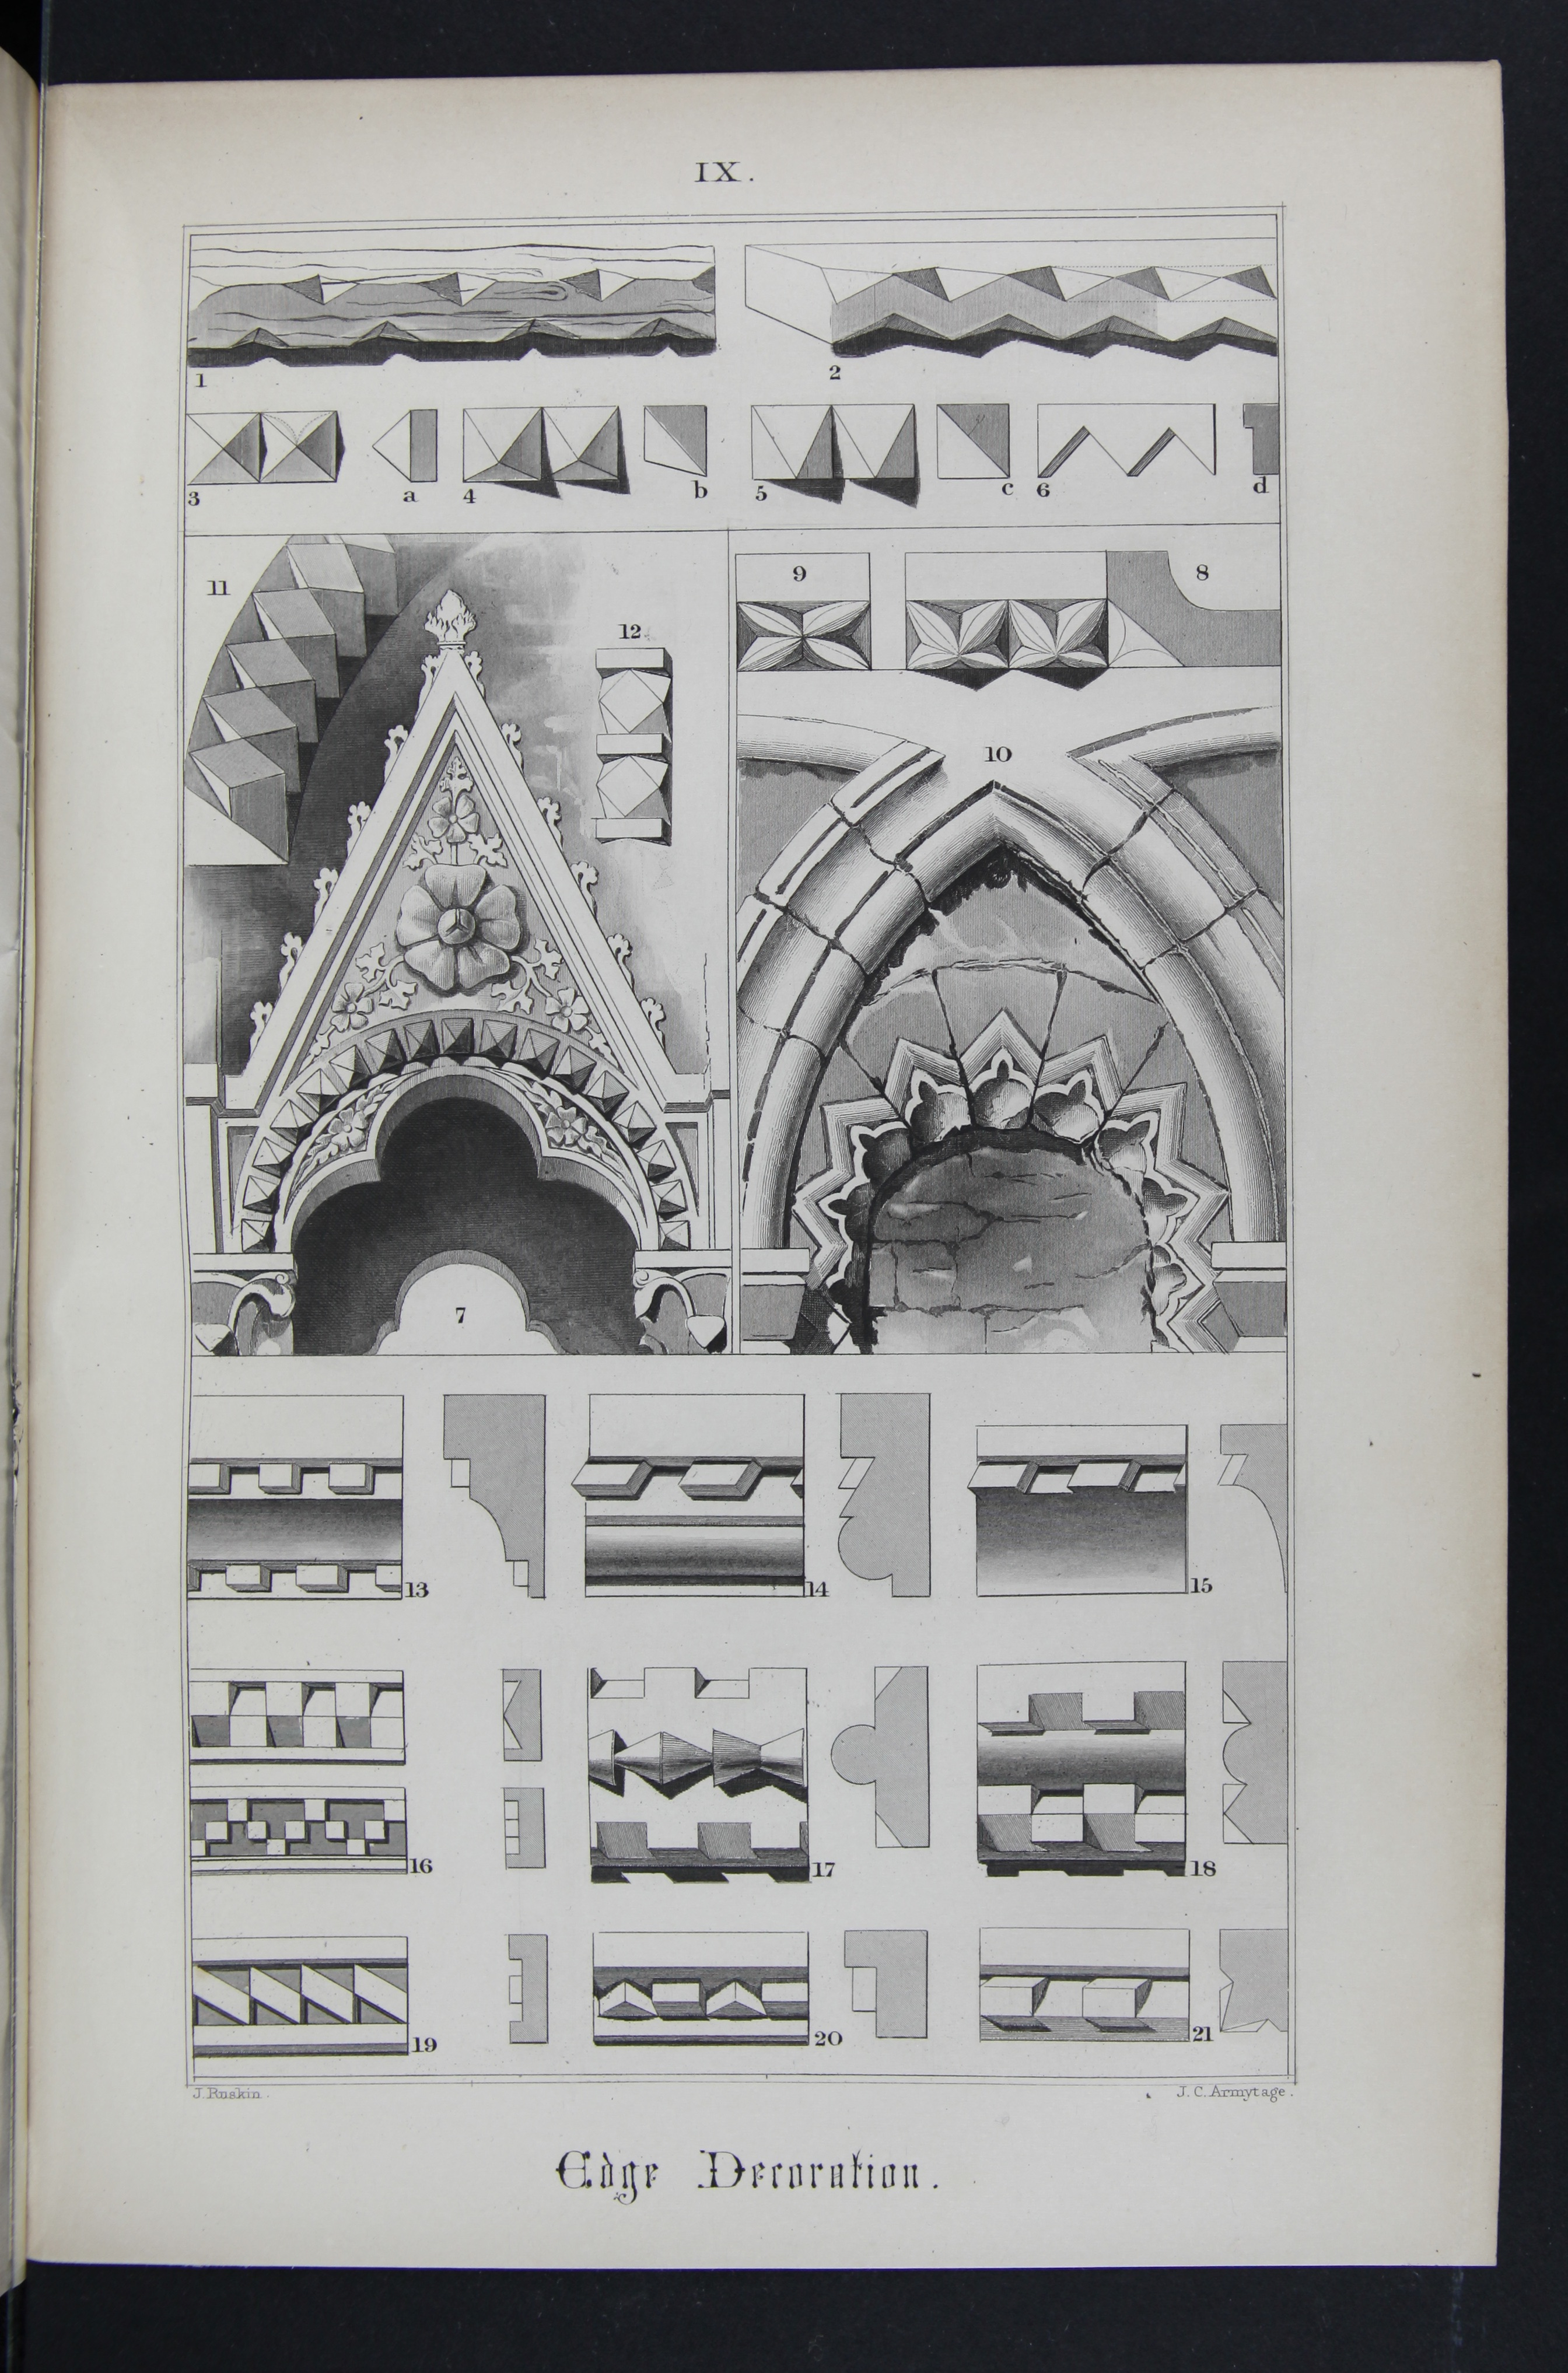 History of the book chapter 9 industrialization of print john ruskin the stones of venice london smith elder and co 1851 na1121v5 r8 1851 john ruskins enthusiasm for the details decorations fandeluxe Image collections